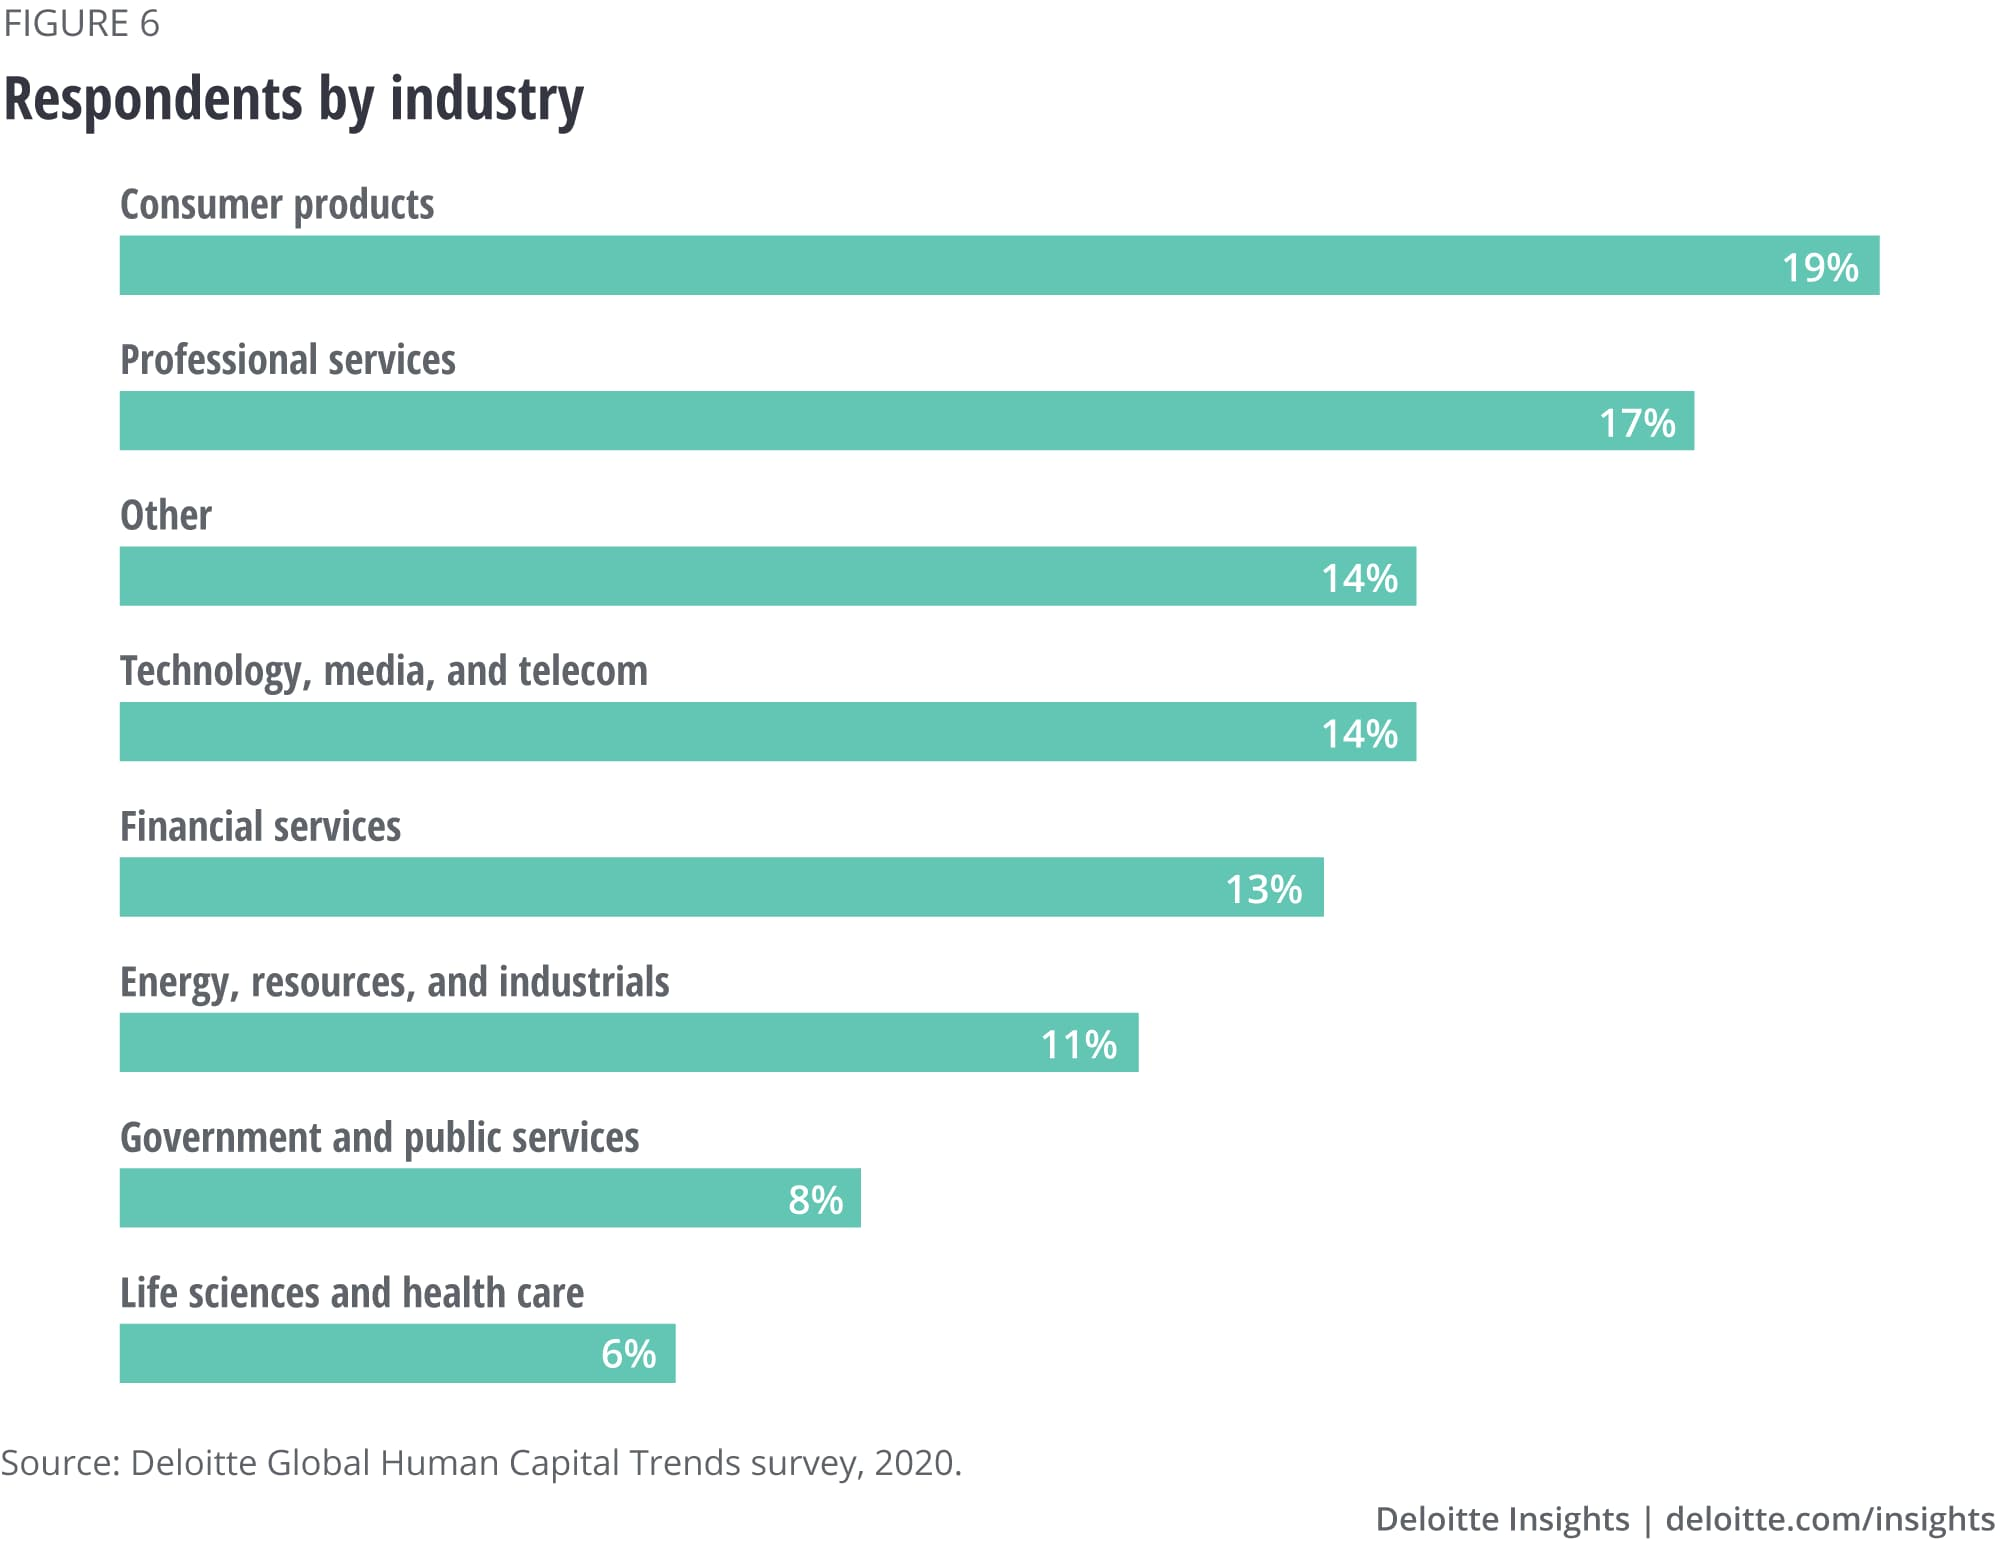 Respondents by industry